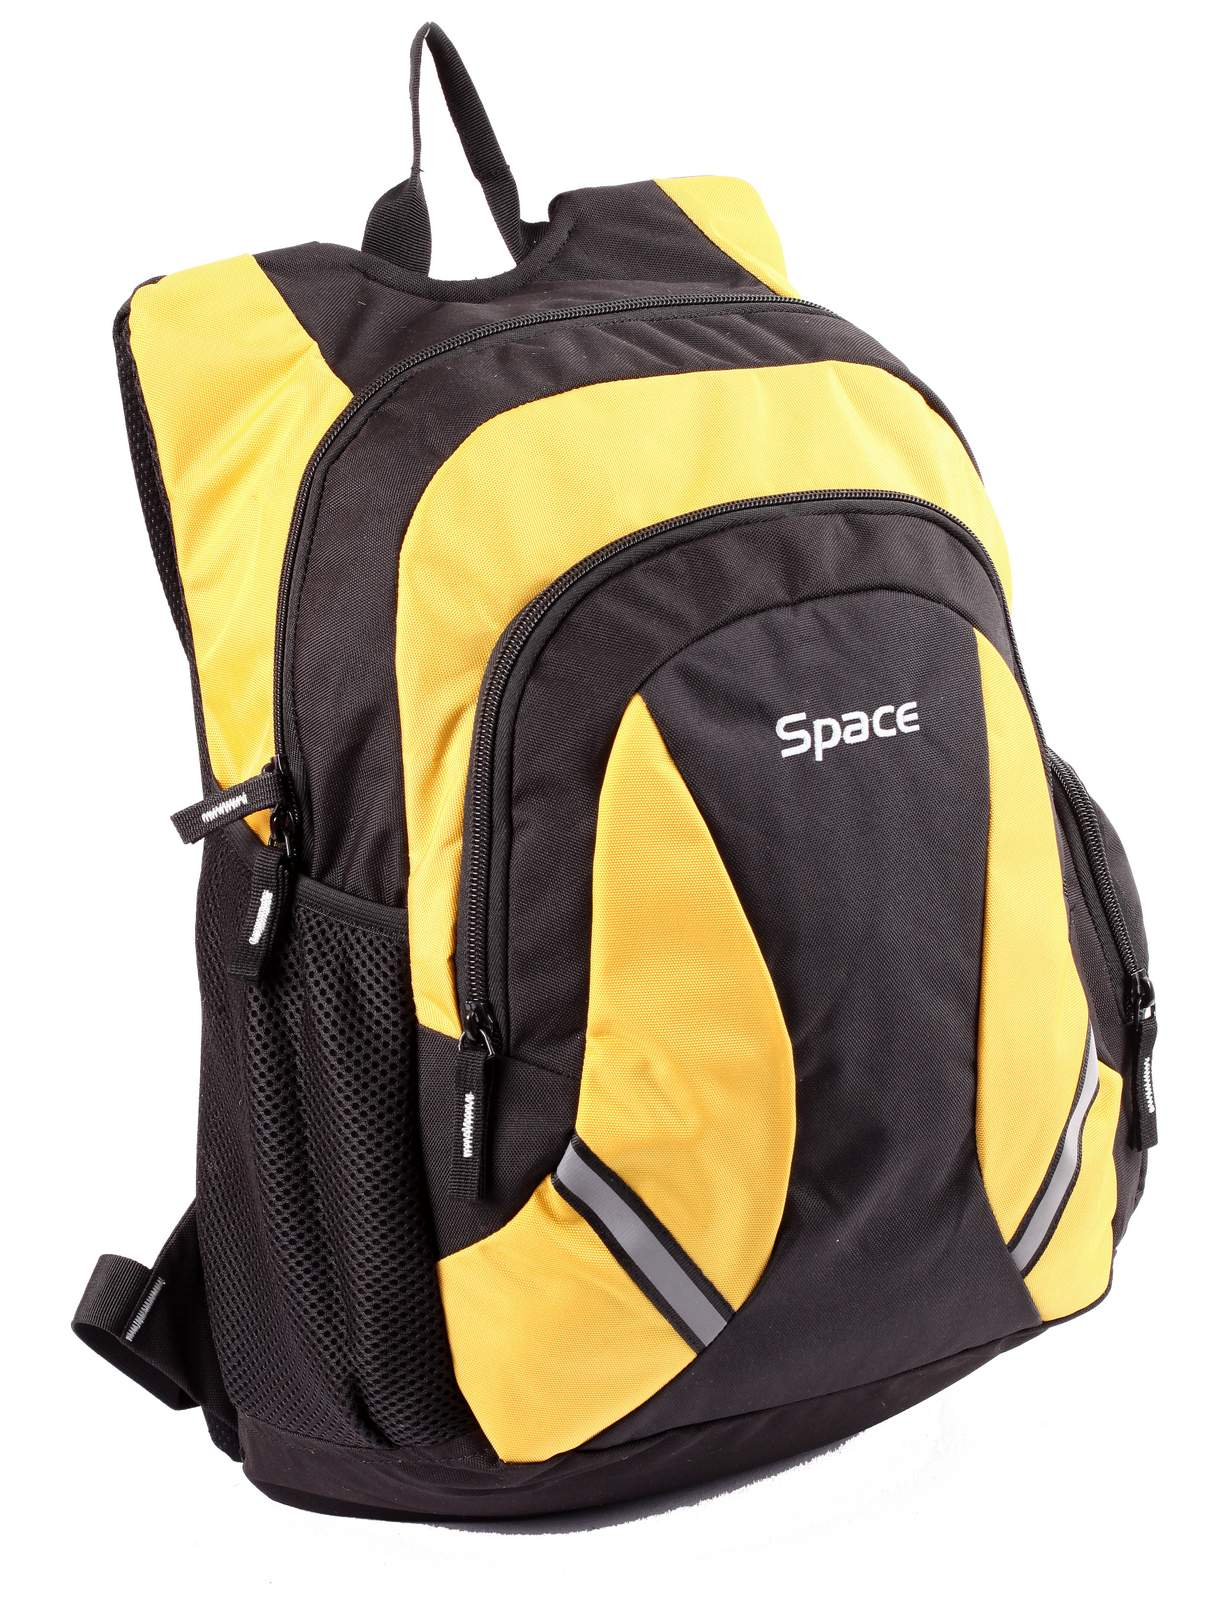 Space School College Bags in Bangalore